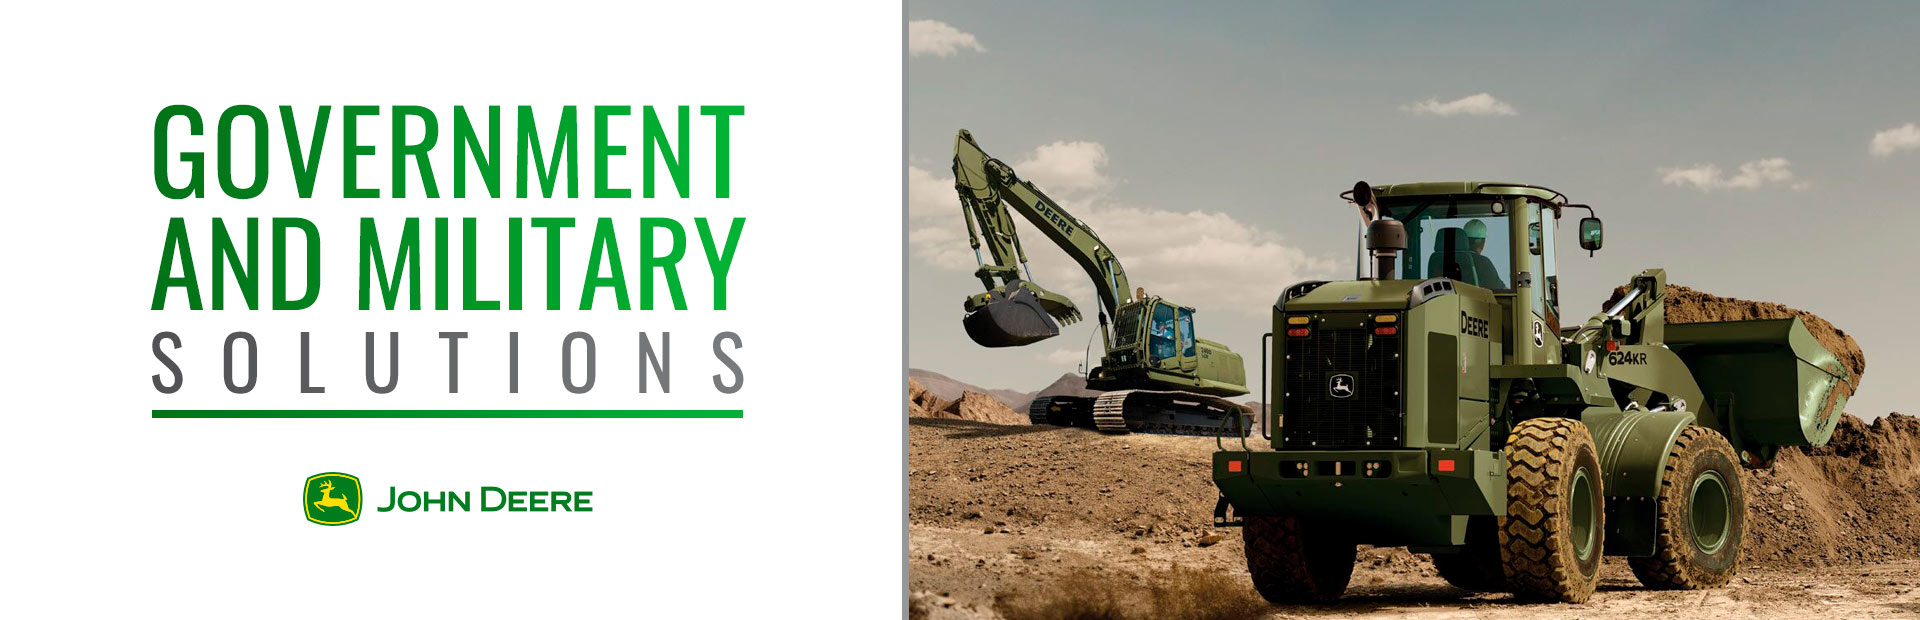 John Deere: Government and Military Solutions